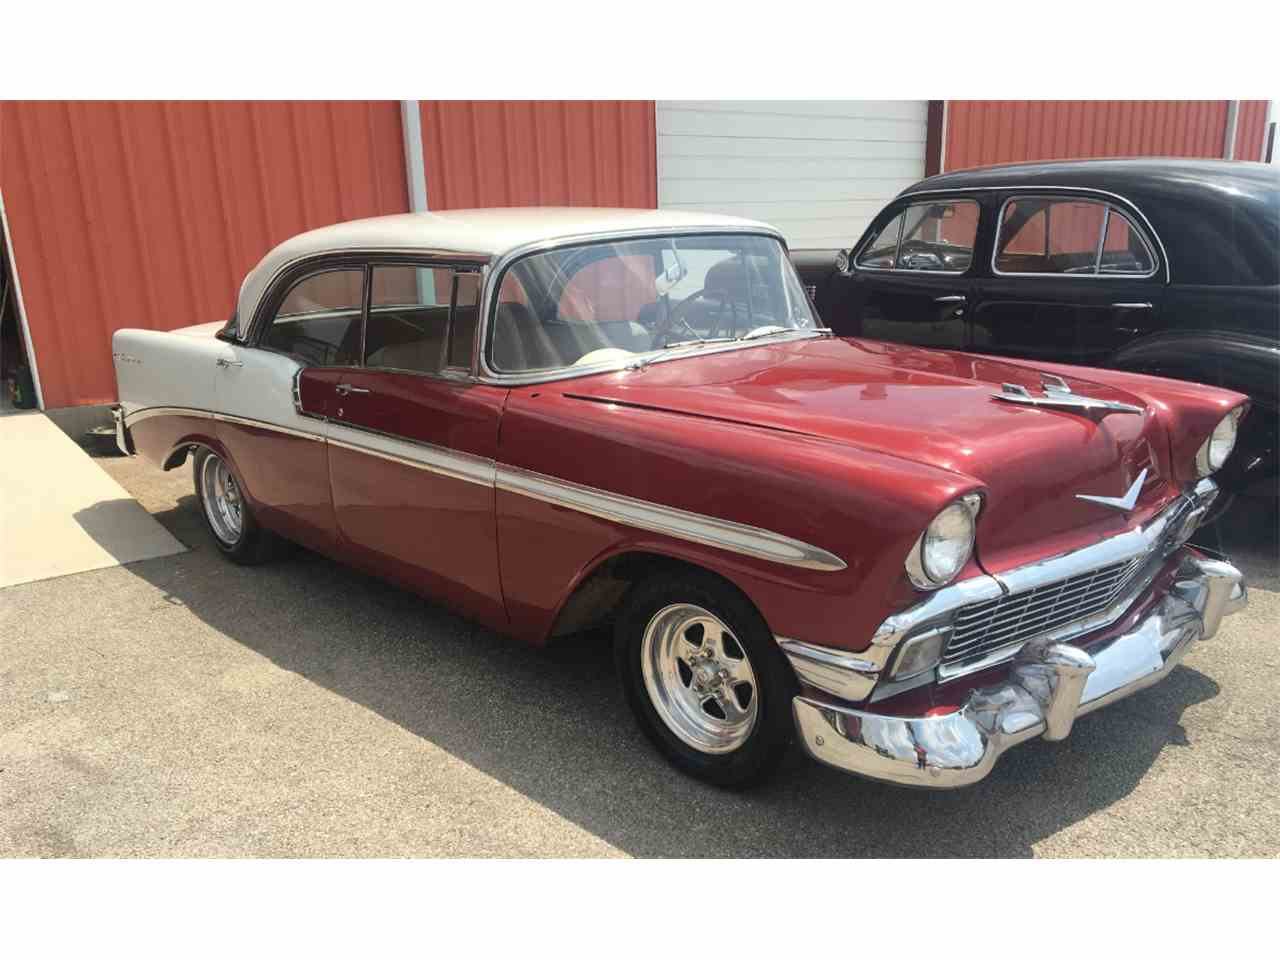 1956 chevrolet bel air 2 door sport coupe 16195 - 1956 Chevrolet Bel Air 971732